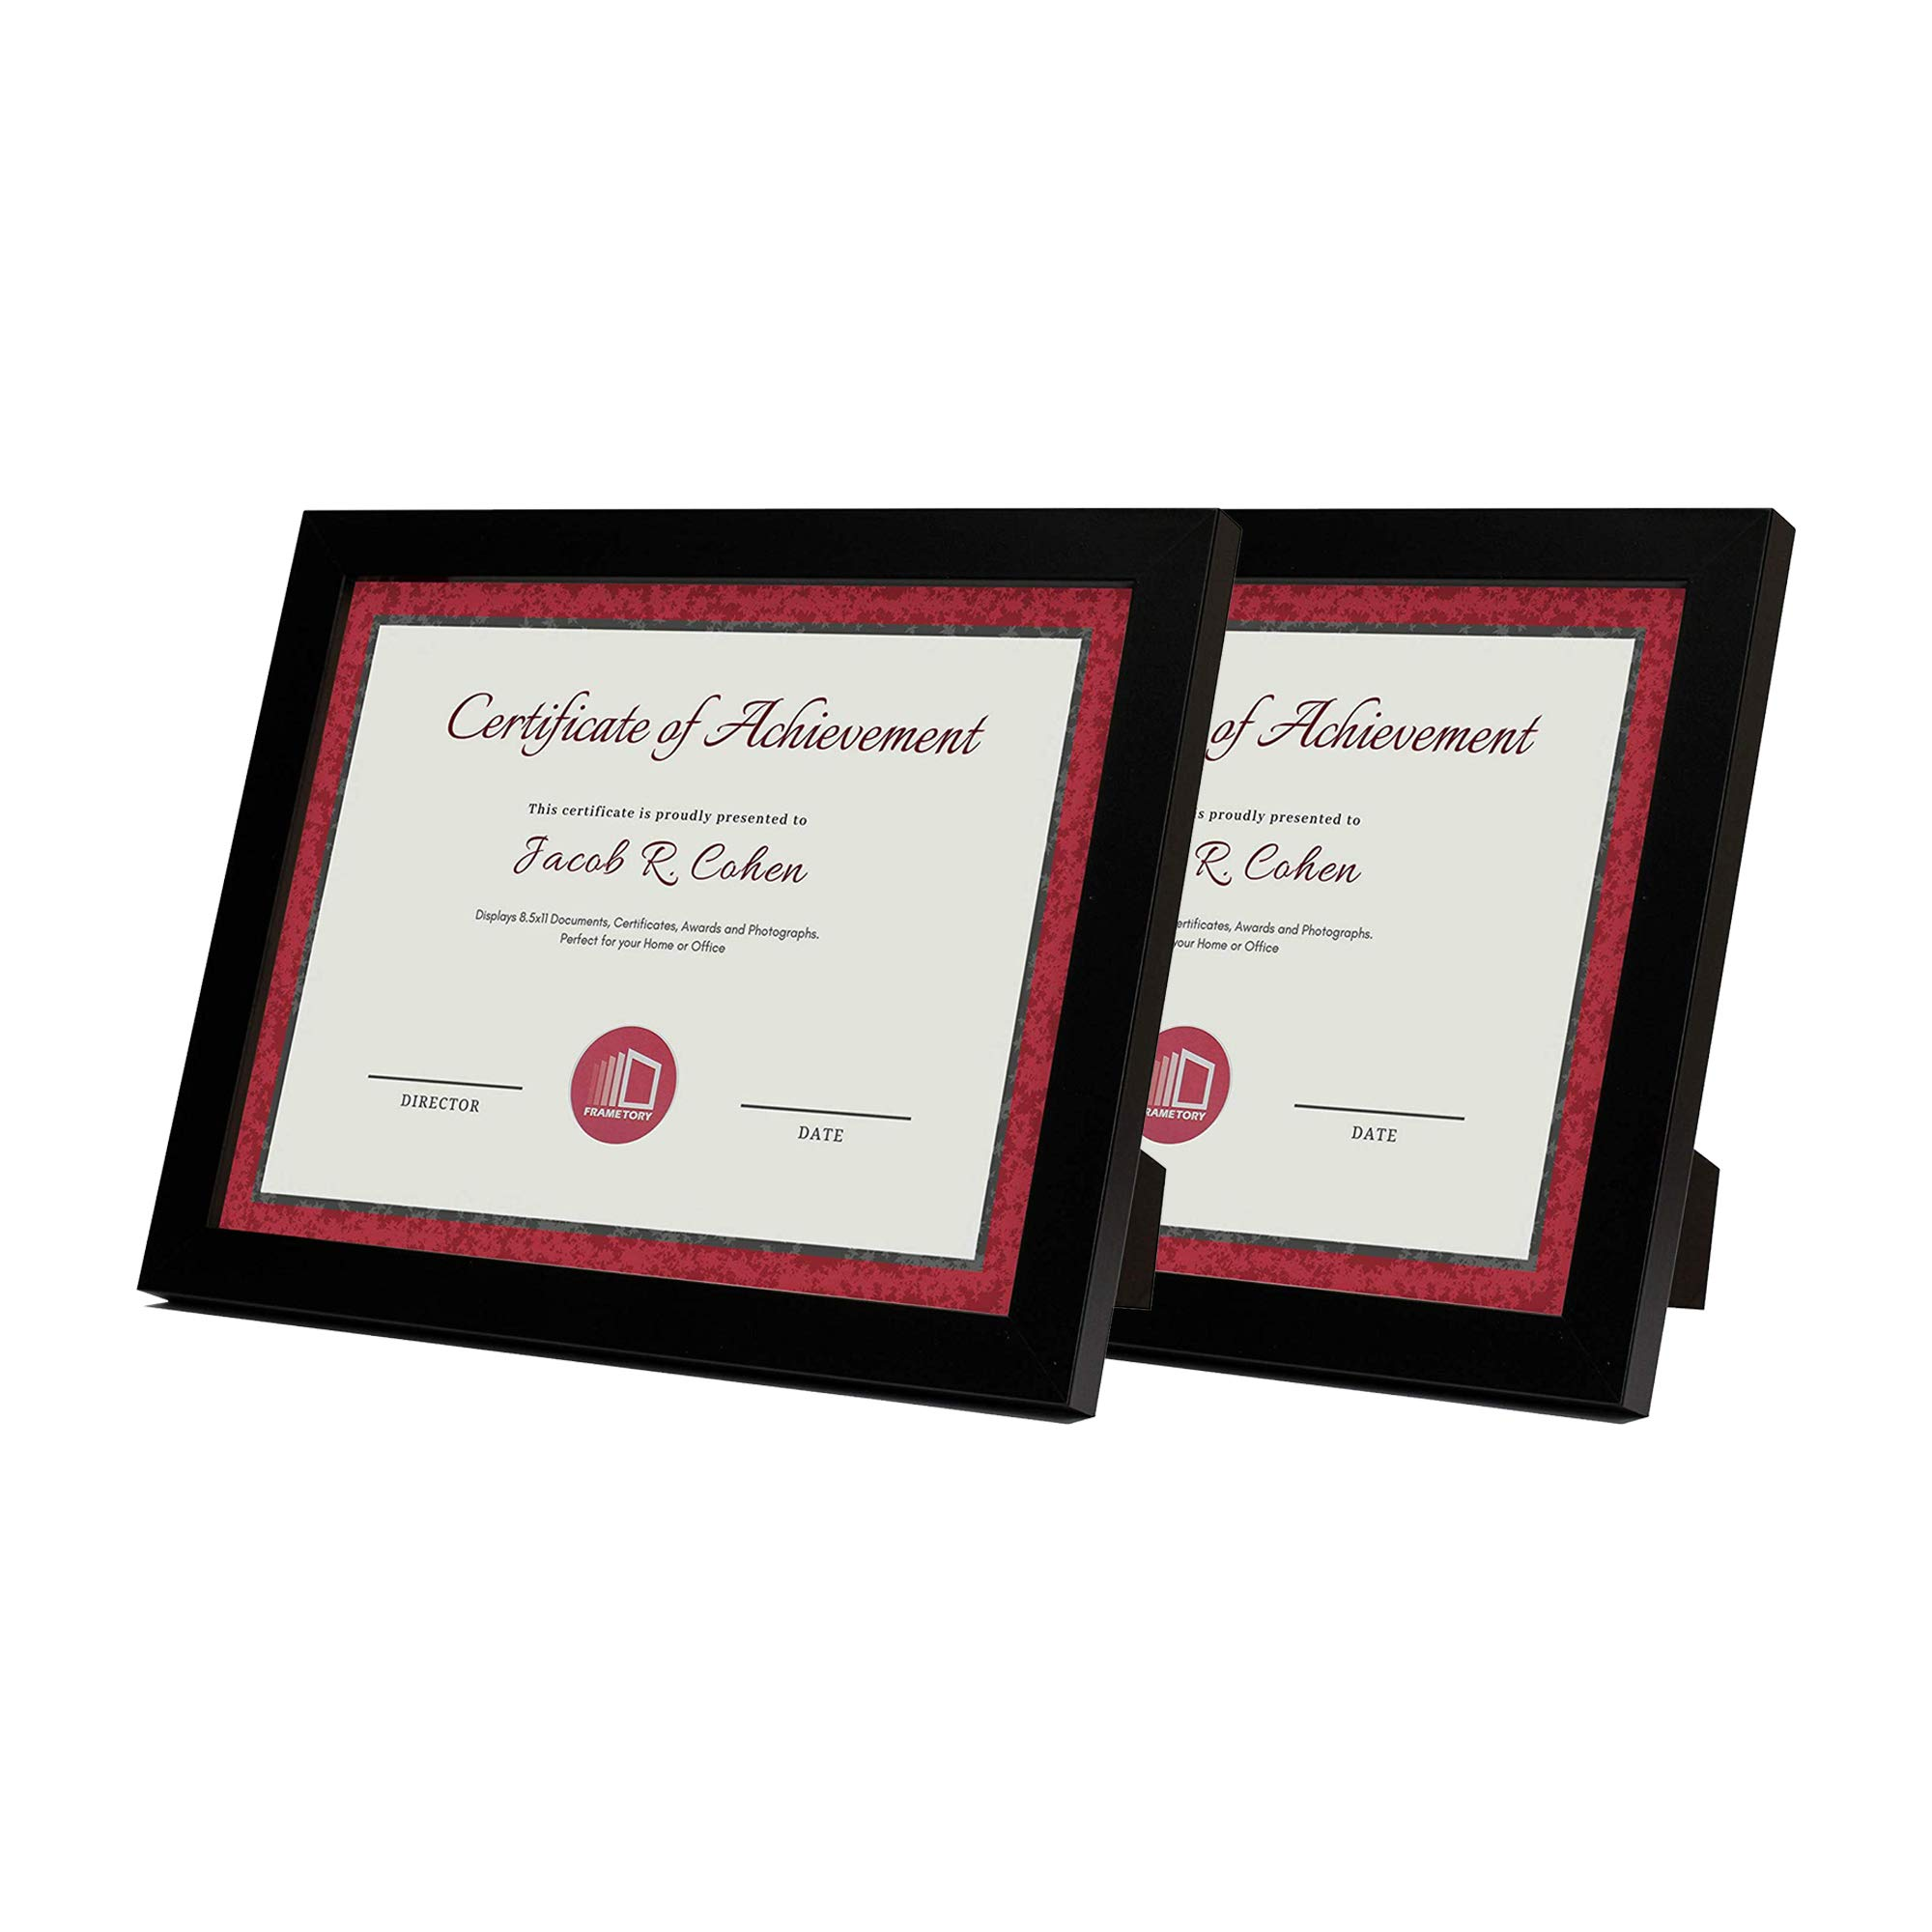 Set of Two, 8.5x11 Black Document Frame - Easel Stand for Table/Desk Top Display - Swivel Tabs, Real Glass - Sawtooth Hangers for Wall Mounting - Landscape/Portrait